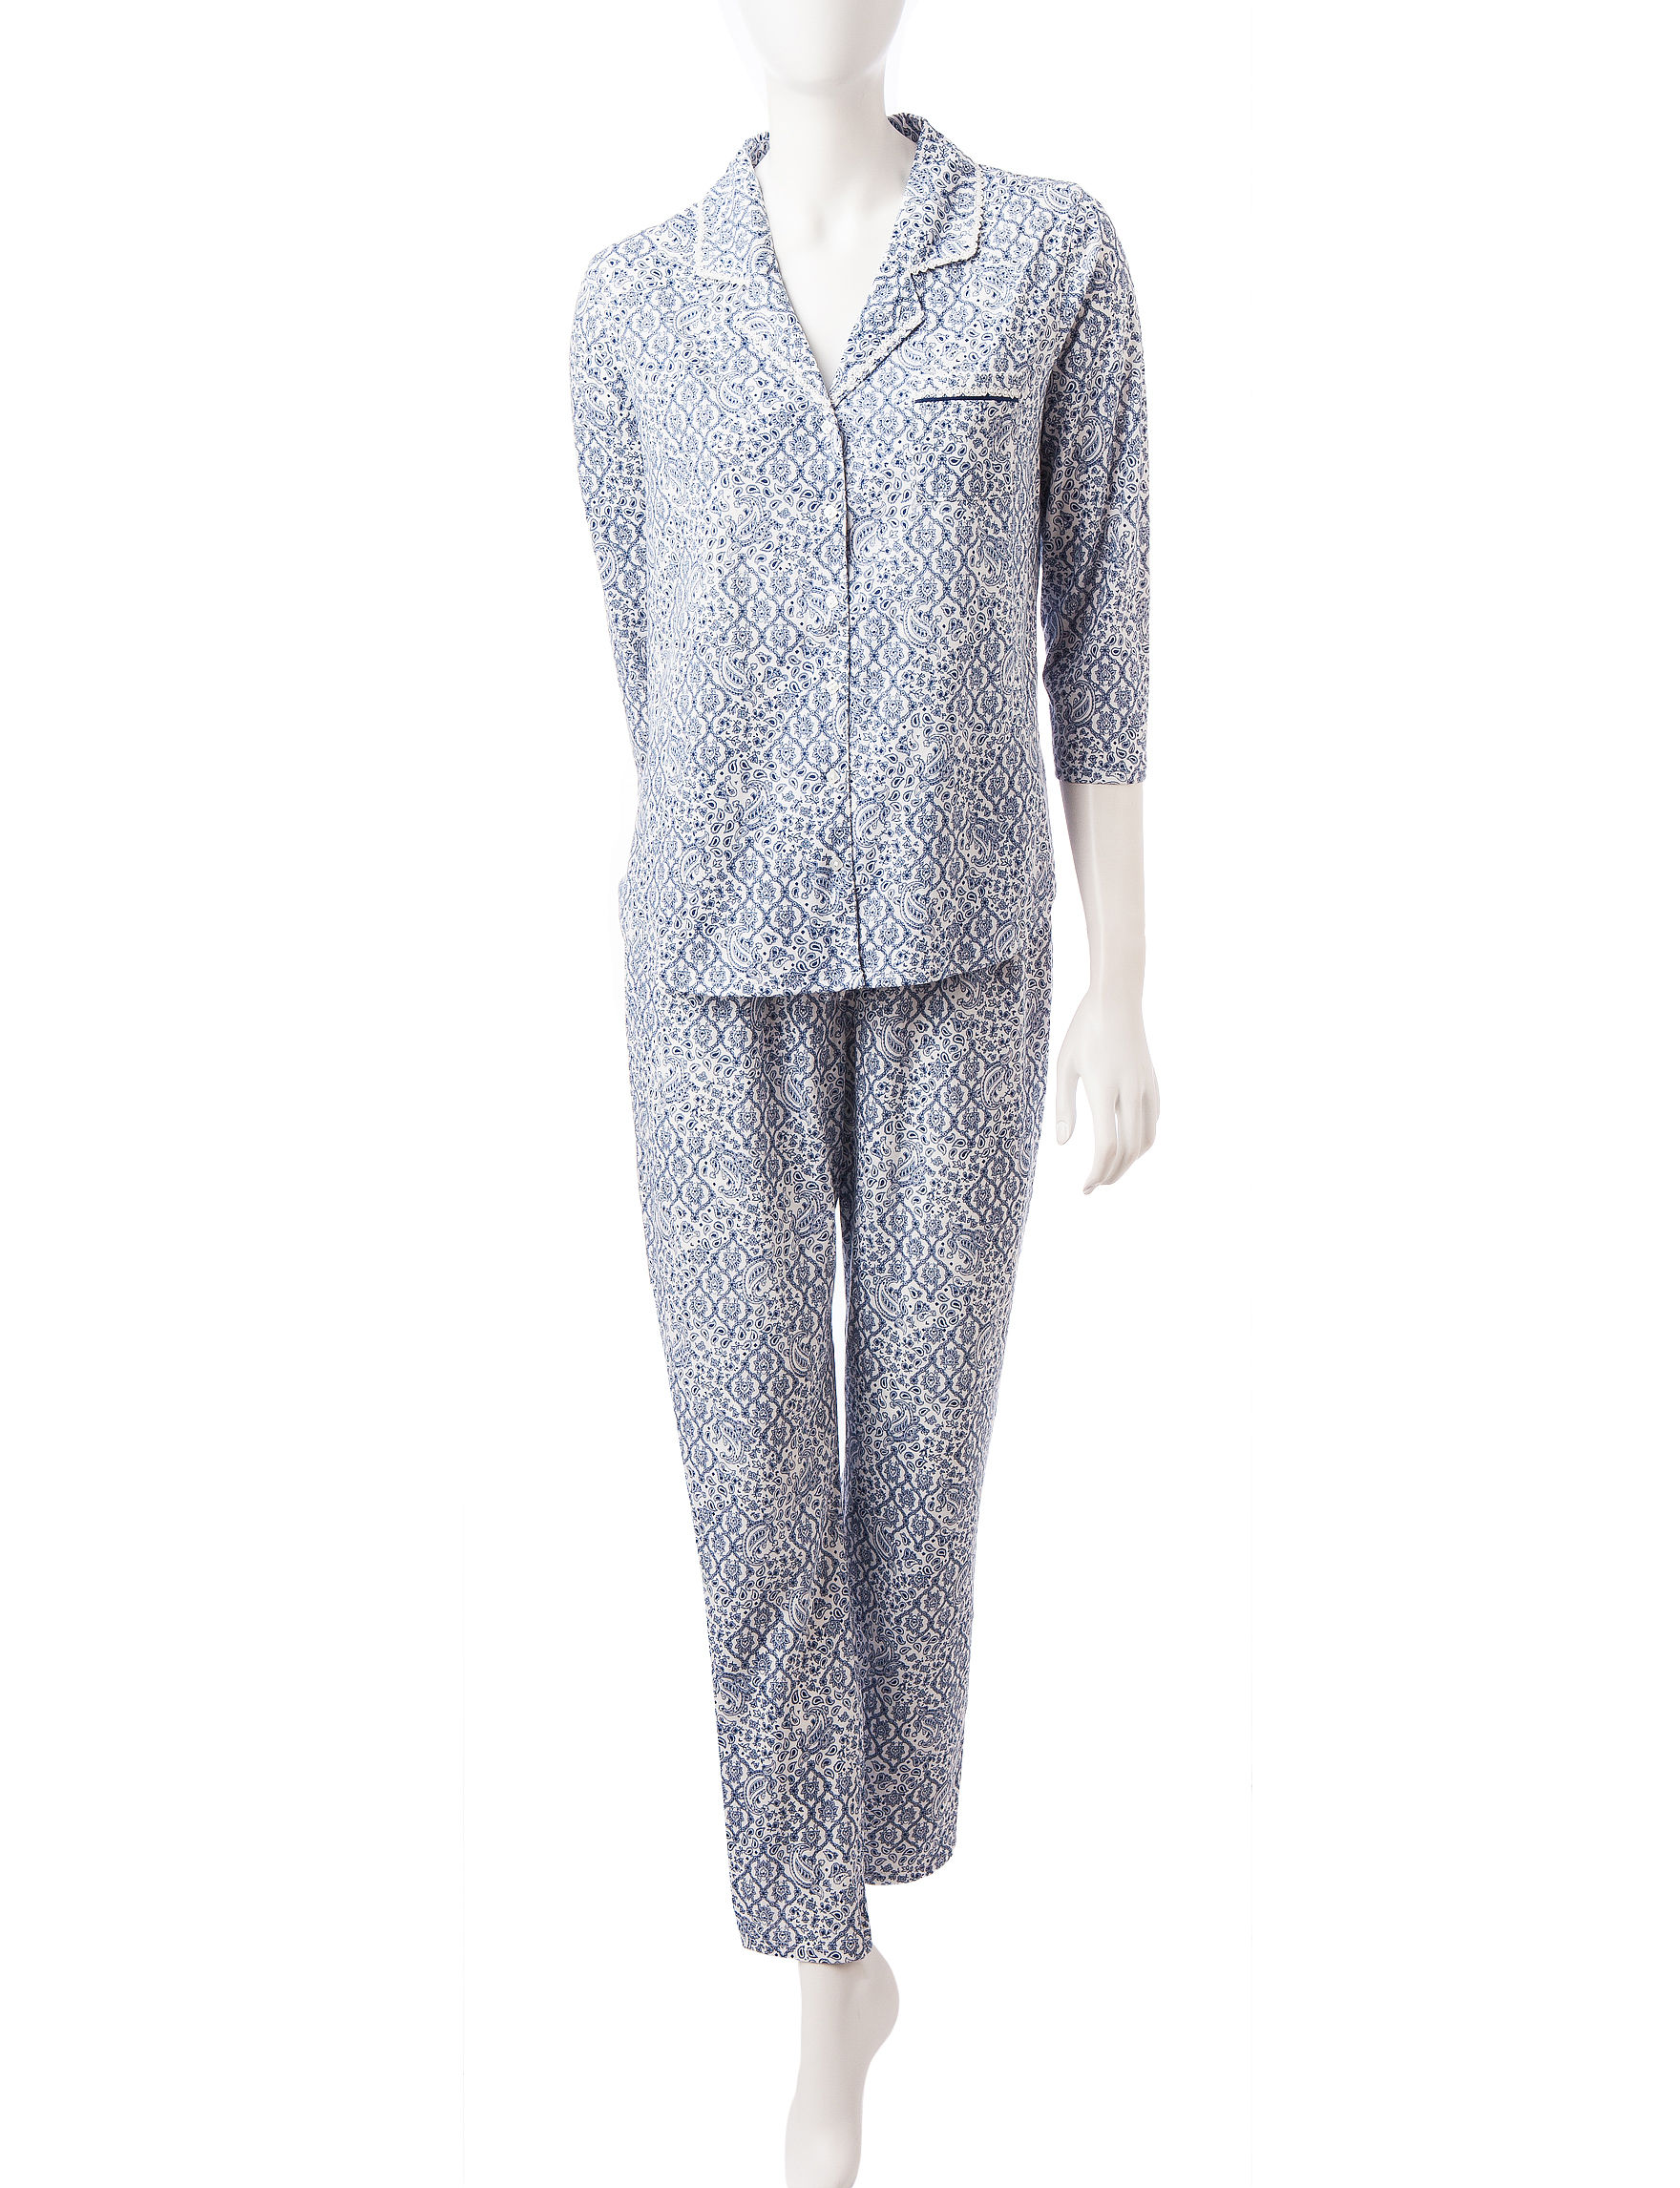 Aria White / Navy Pajama Sets